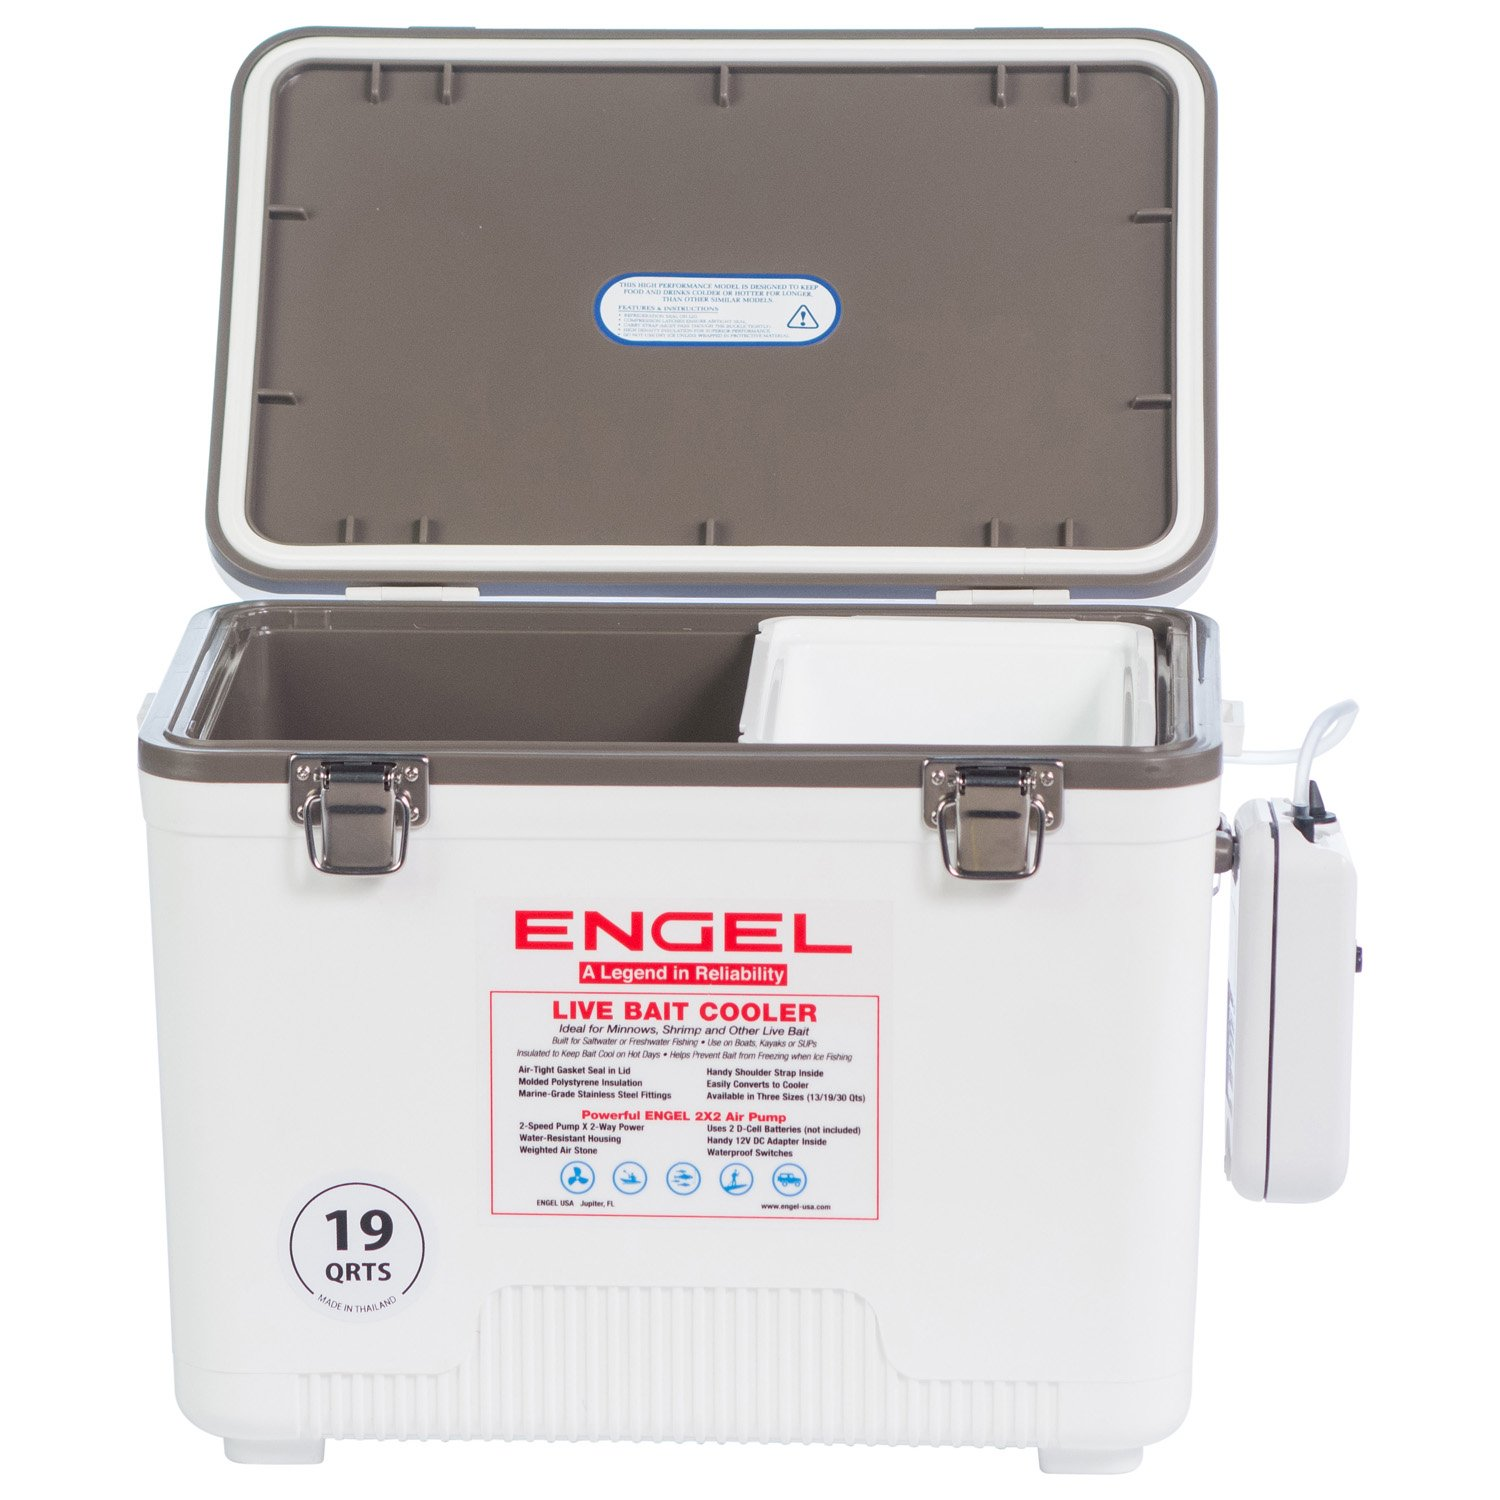 Engel Coolers Live Bait Cooler/Dry Box with Air Pump.